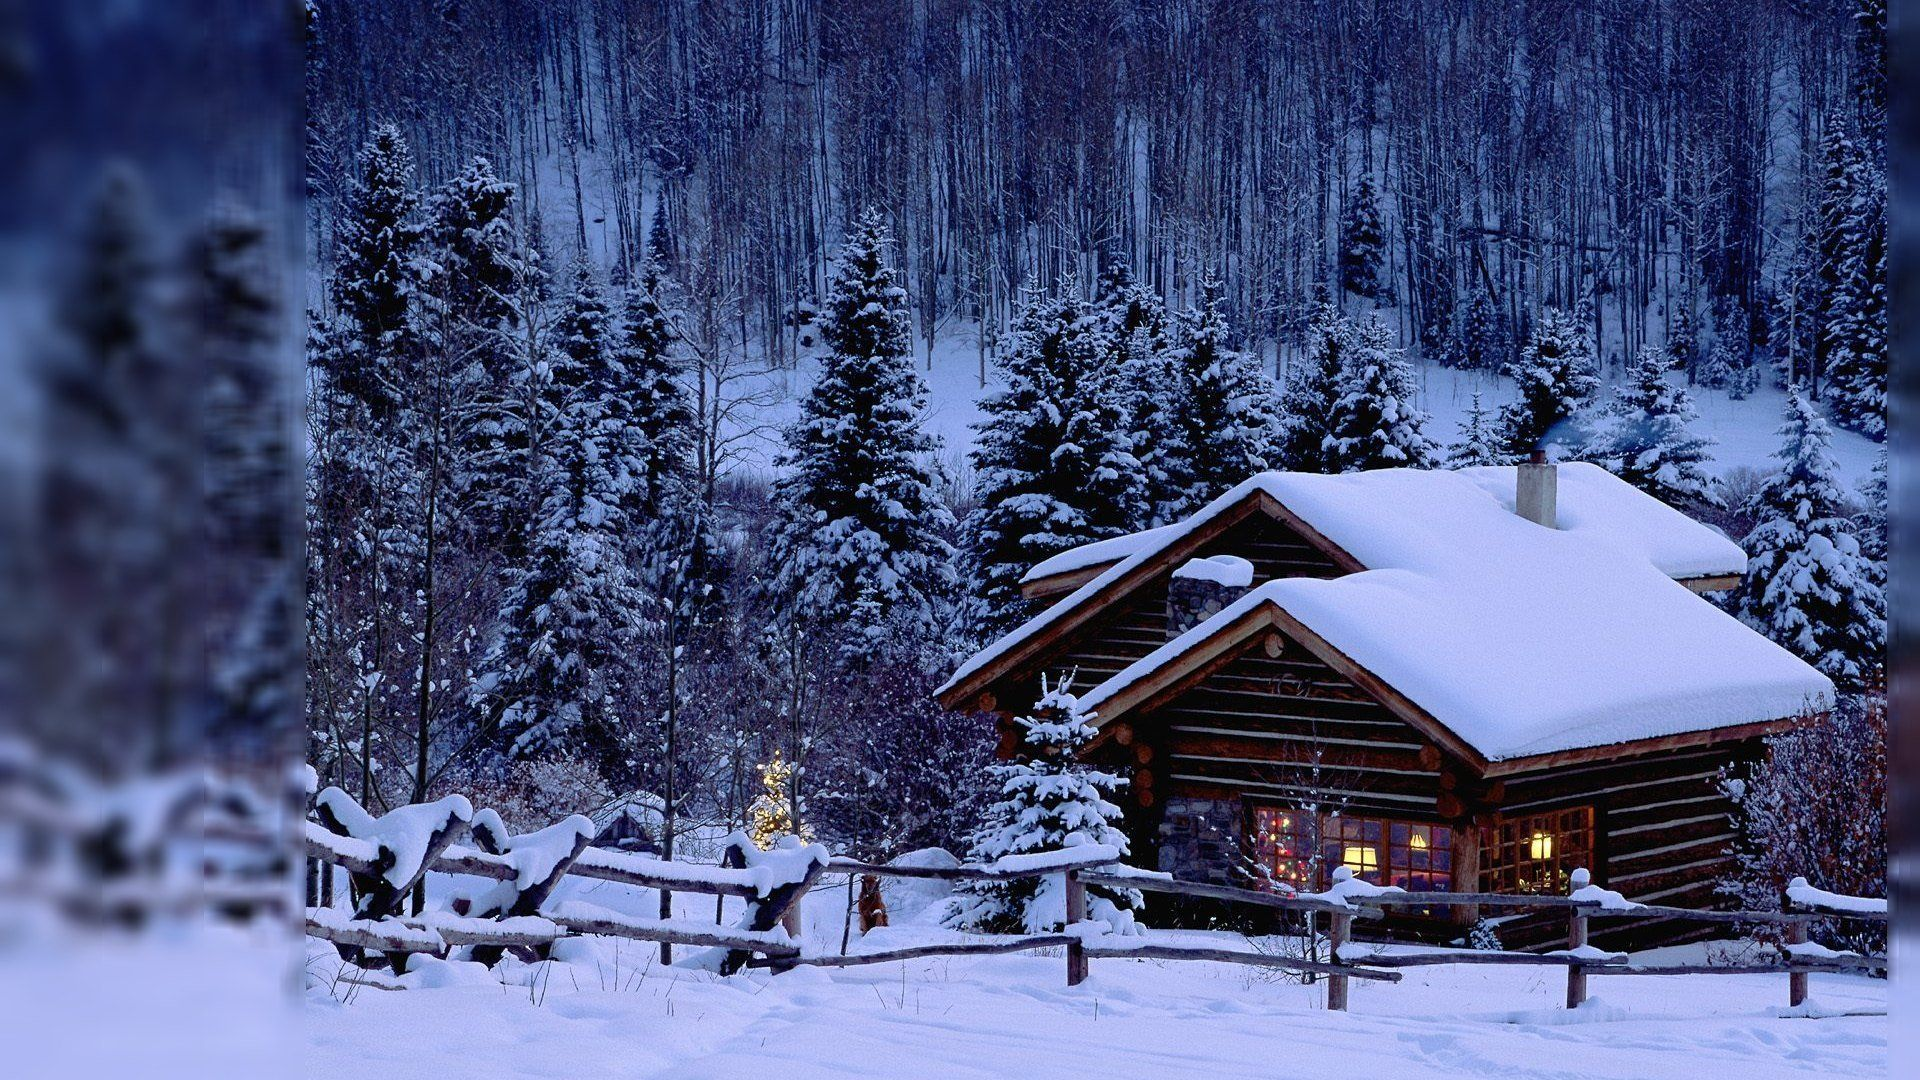 Hd Wallpapers Nature Winter Widescreen 2 Hd Wallpapers Americana